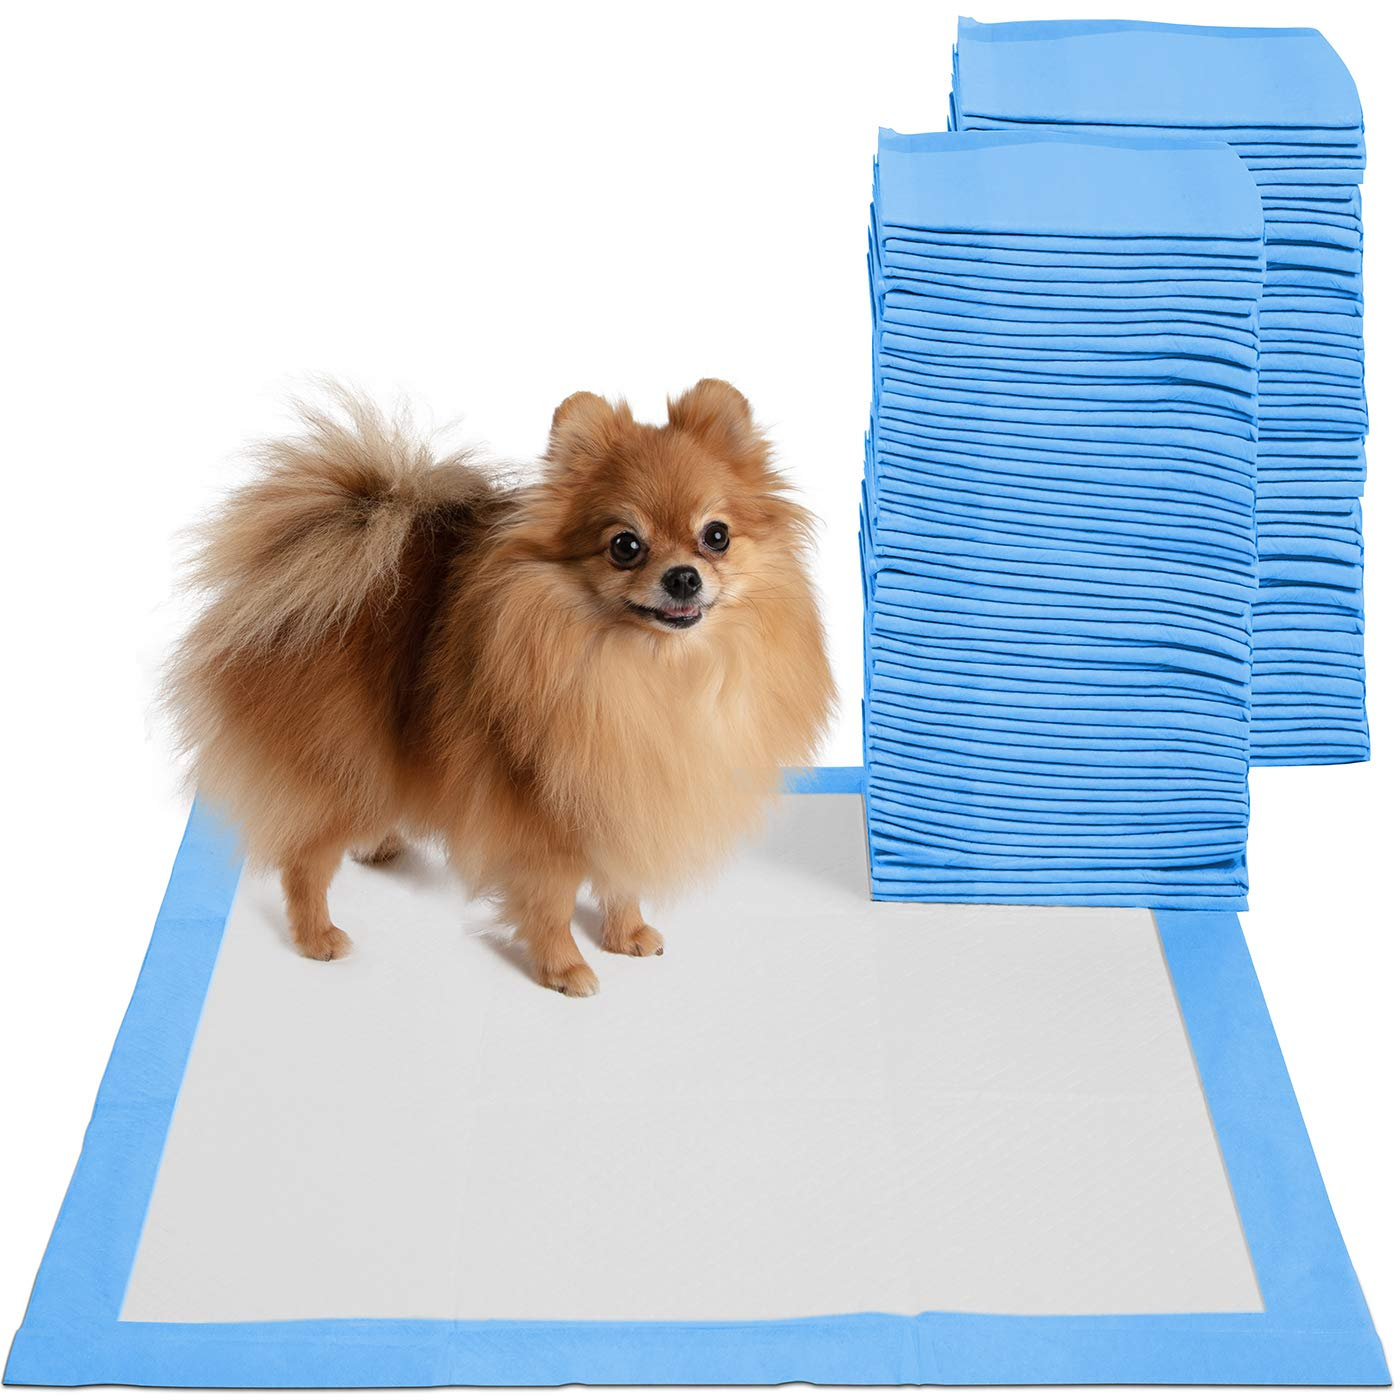 100 Pack 22 X 22 Pet Training Potty Pee Pads for Dogs and Cats, 100 Count